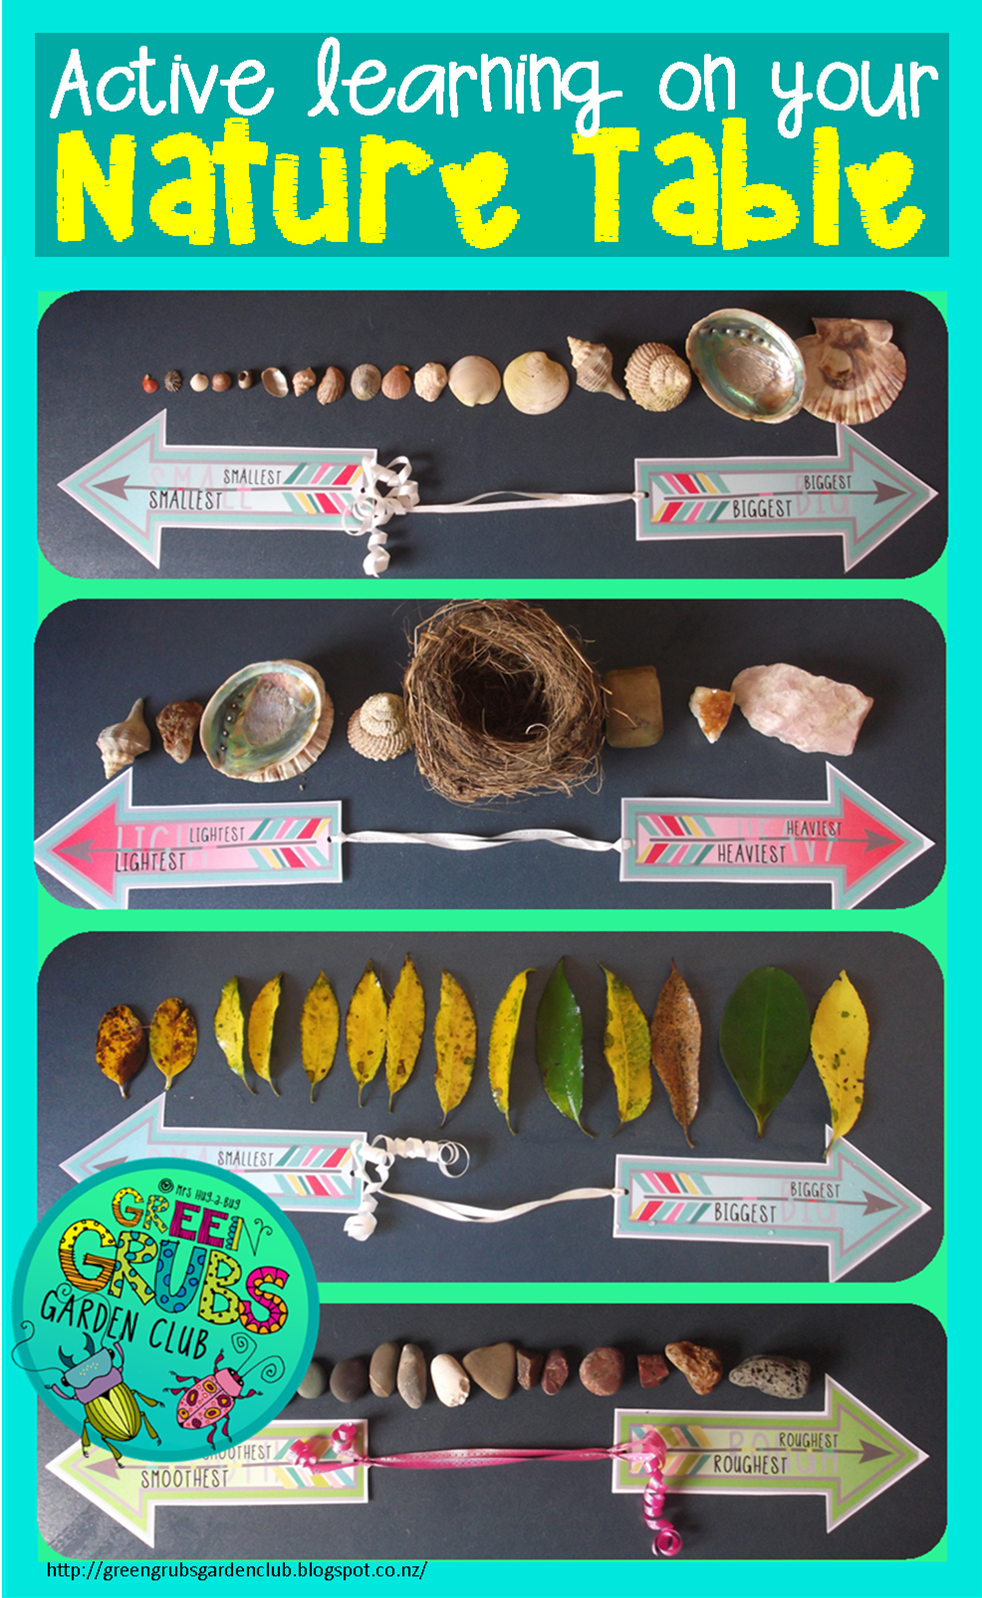 Bringing active learning to your Nature Table {PART 1}